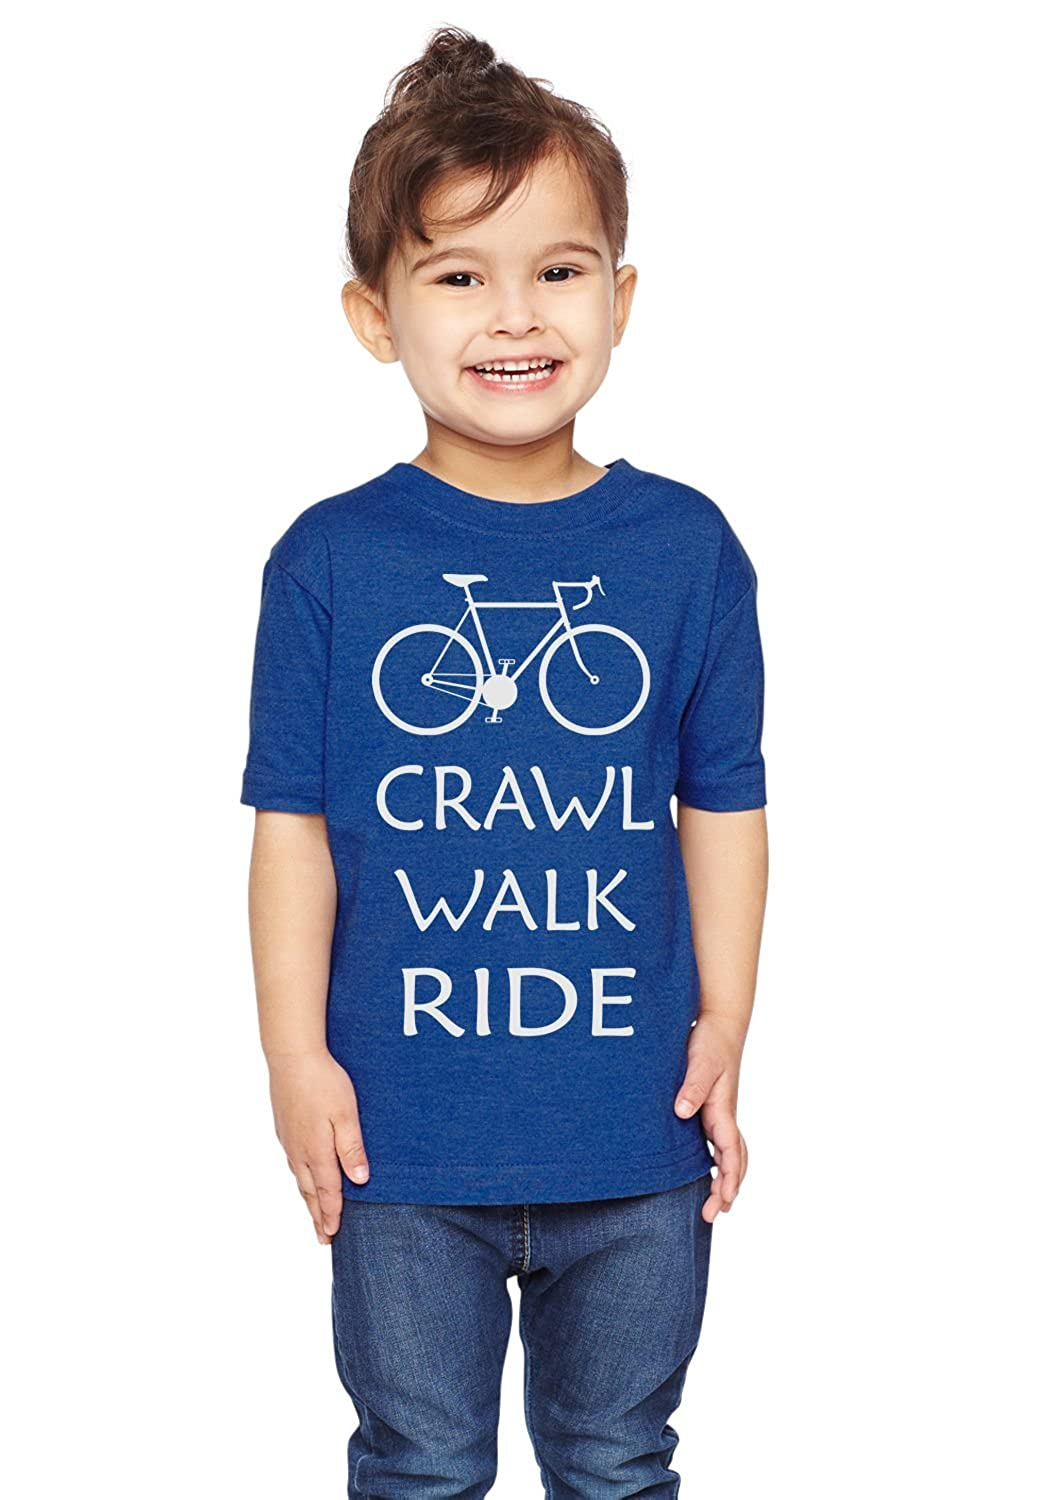 Brain Juice Tees Crawl Walk Ride Unisex Toddler Bike Shirt